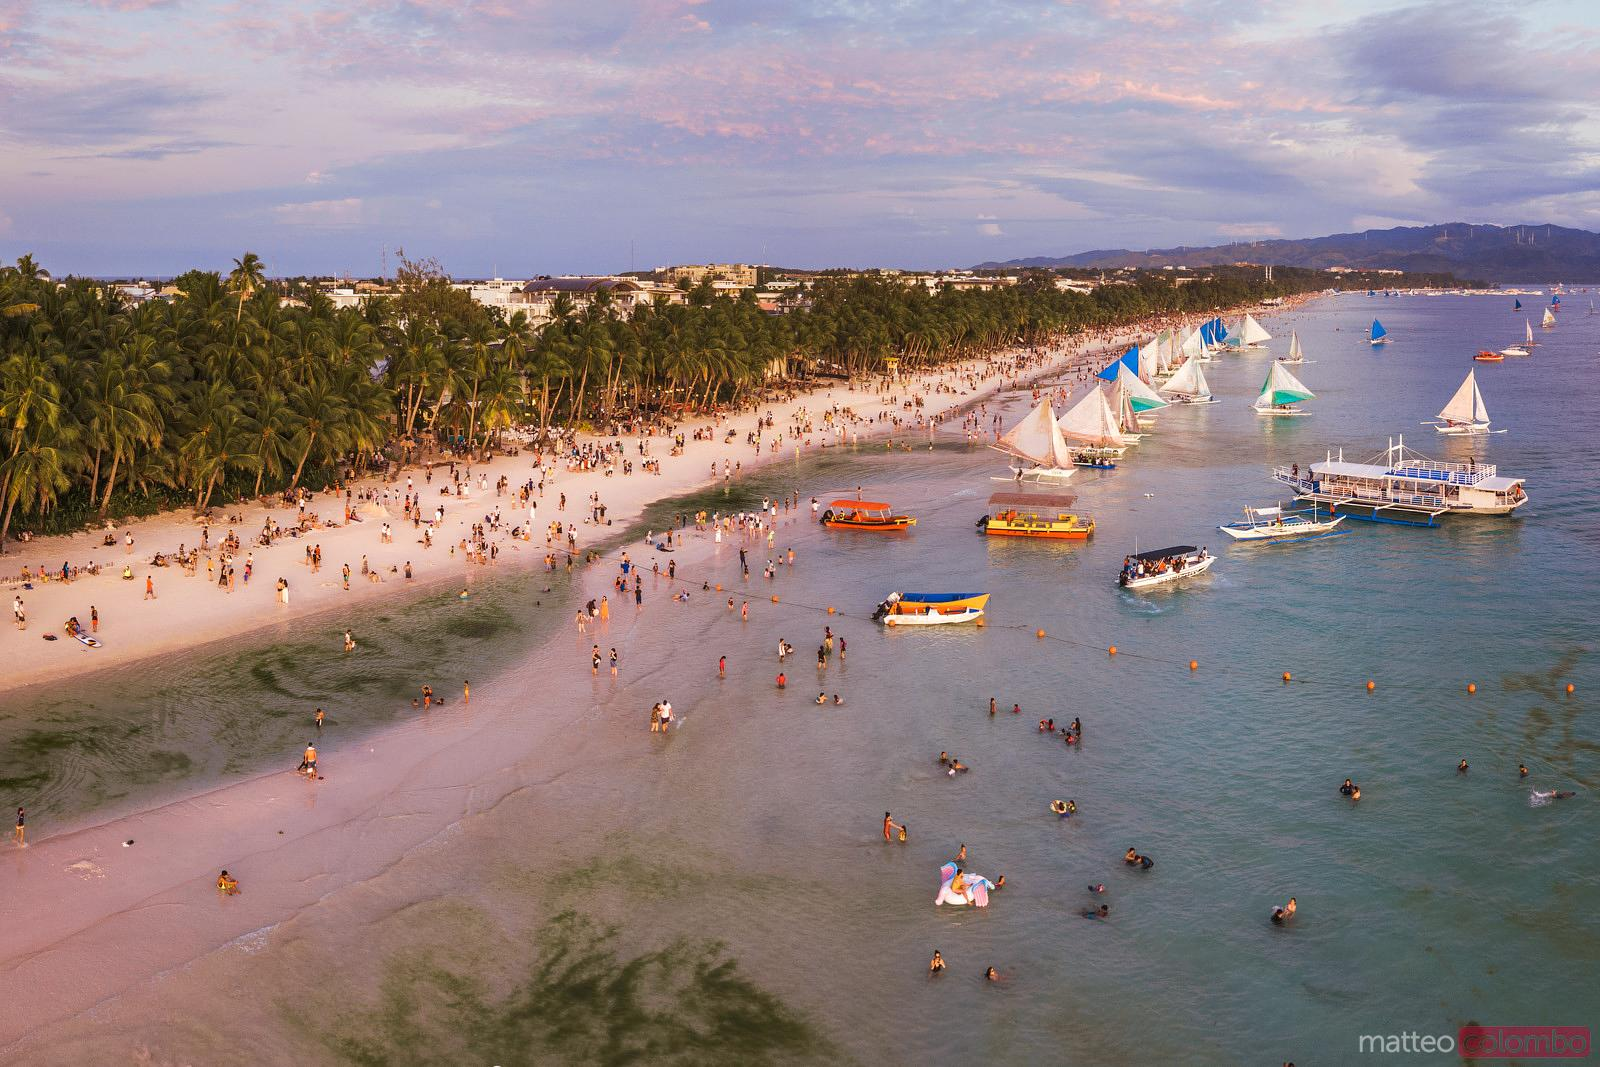 Awesome sunset over White beach, Boracay